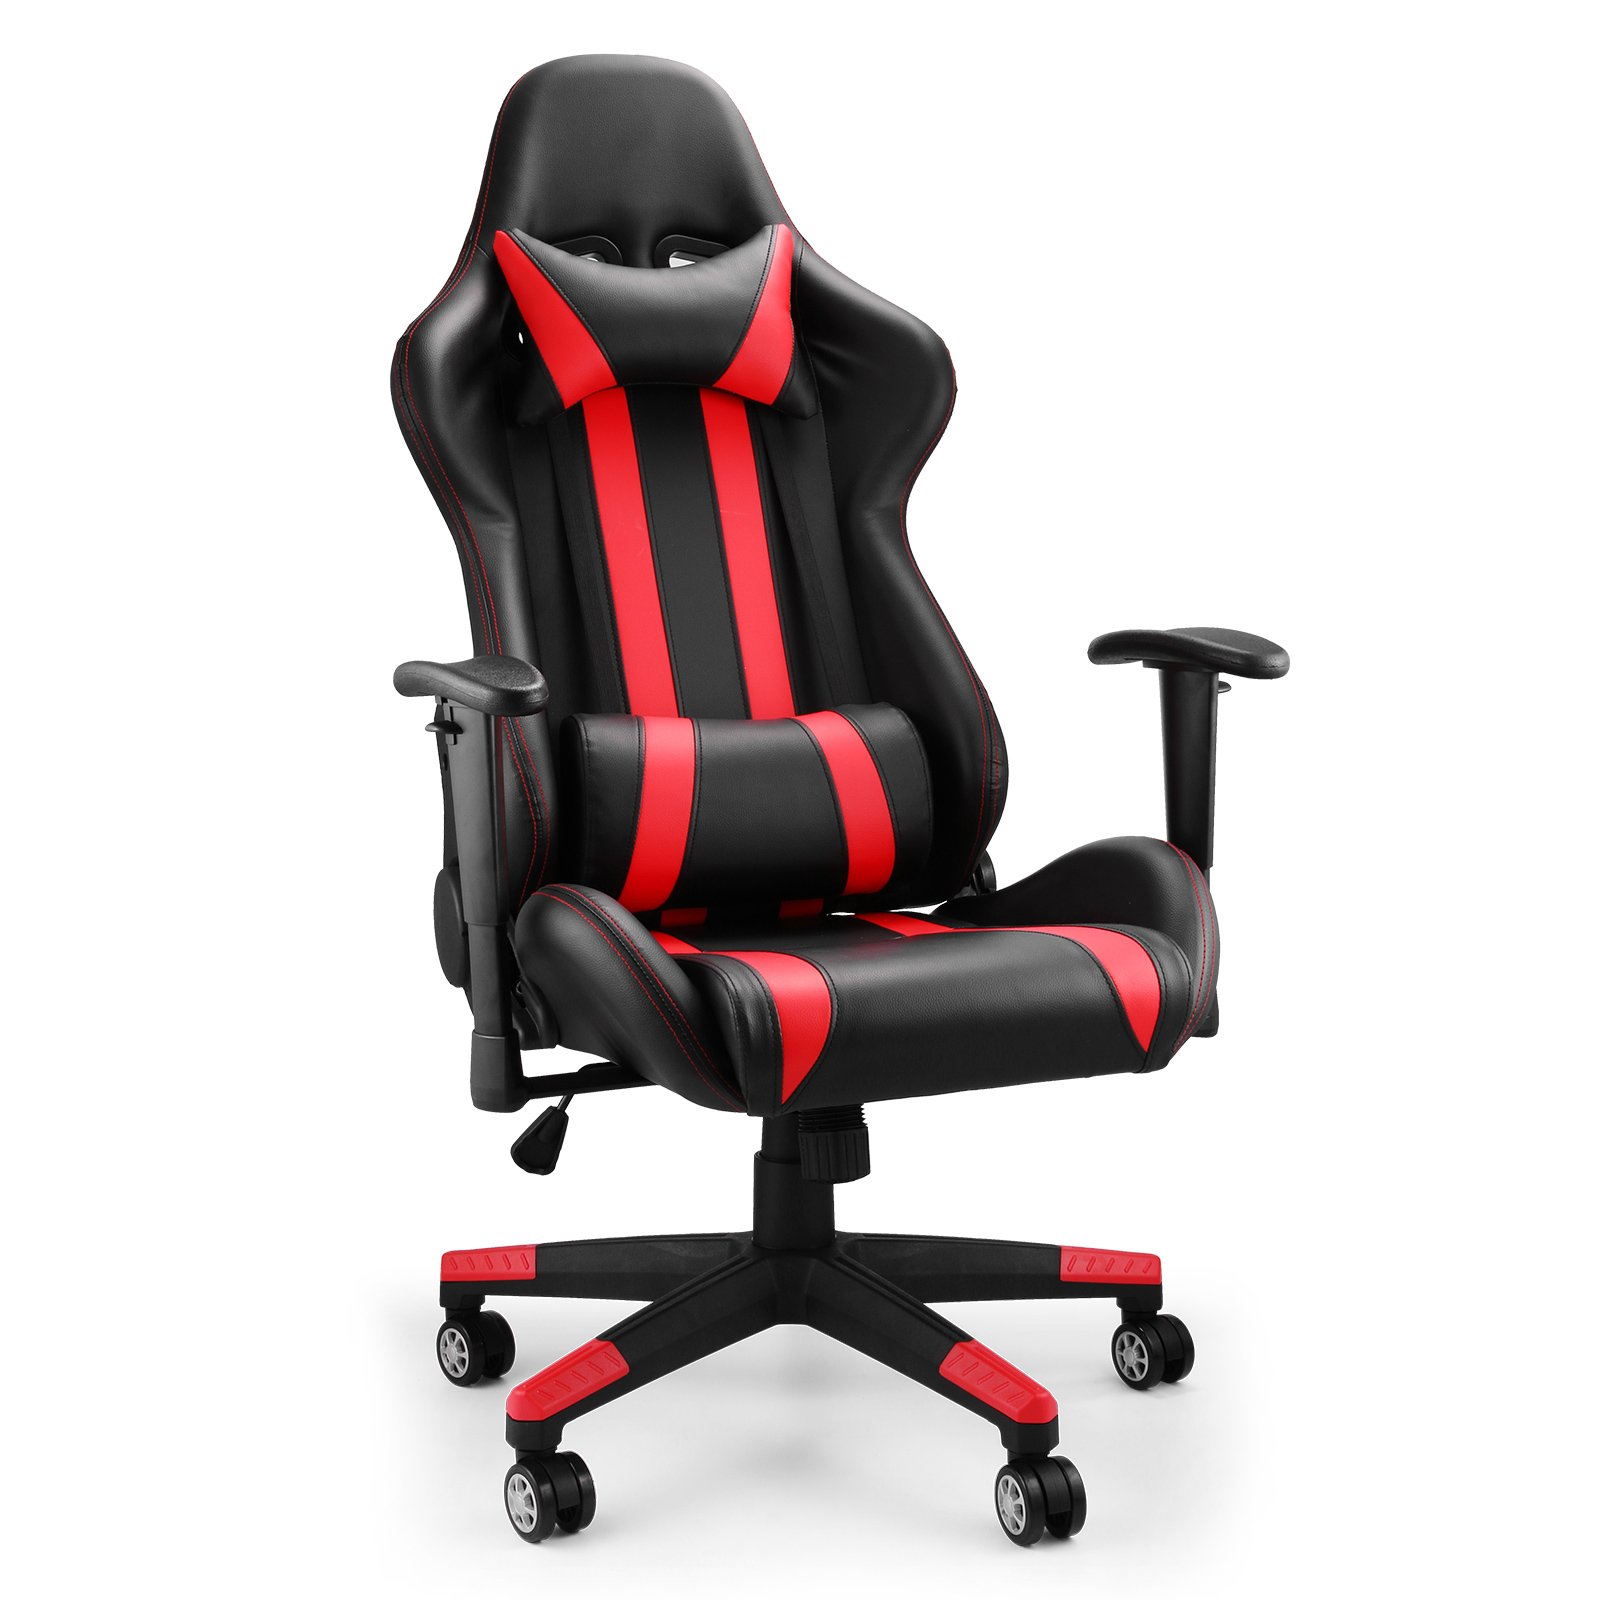 cheap red and black high chair find red and black high chair deals